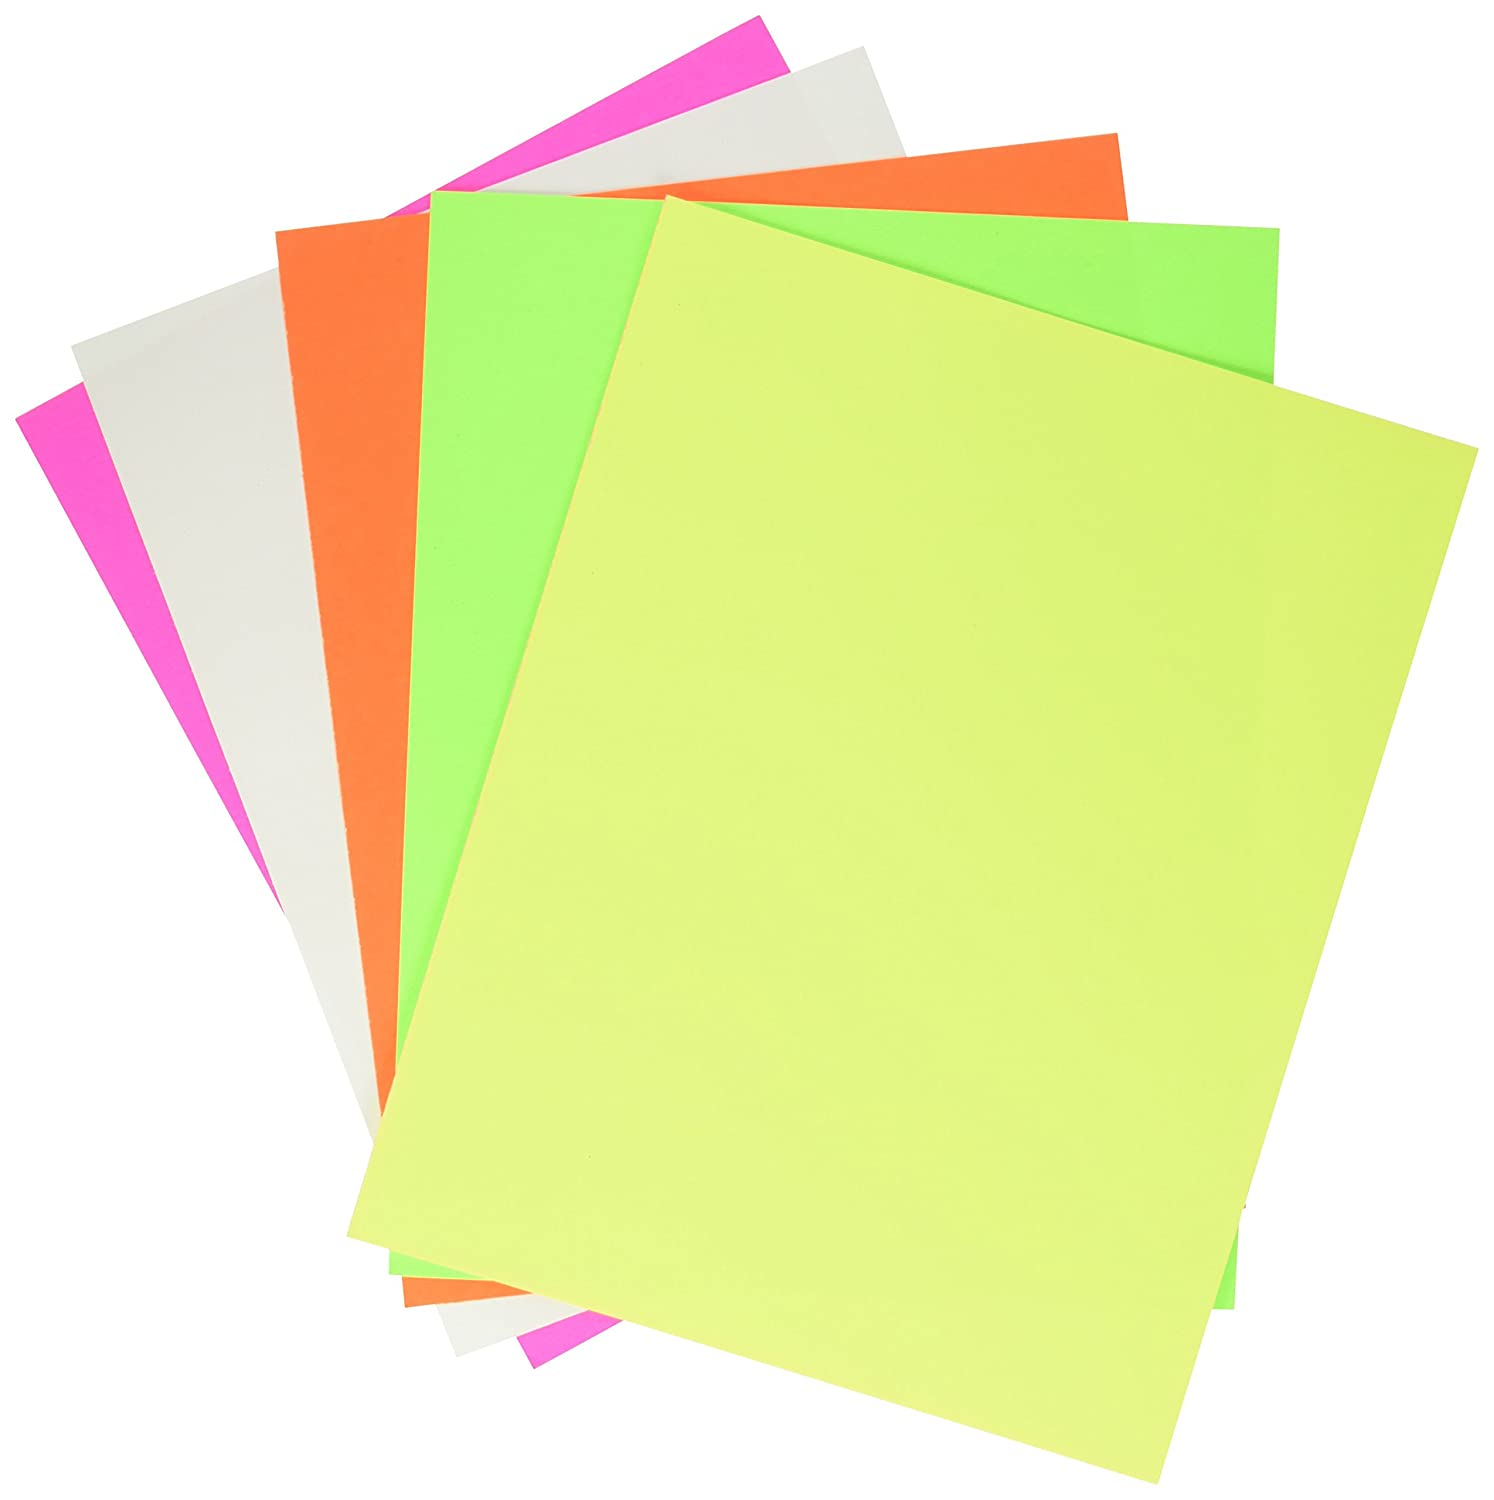 School Smart 1371700 Poster Board - 11 x 14 - Pack of 50 - Assorted Neon Colors School Specialty